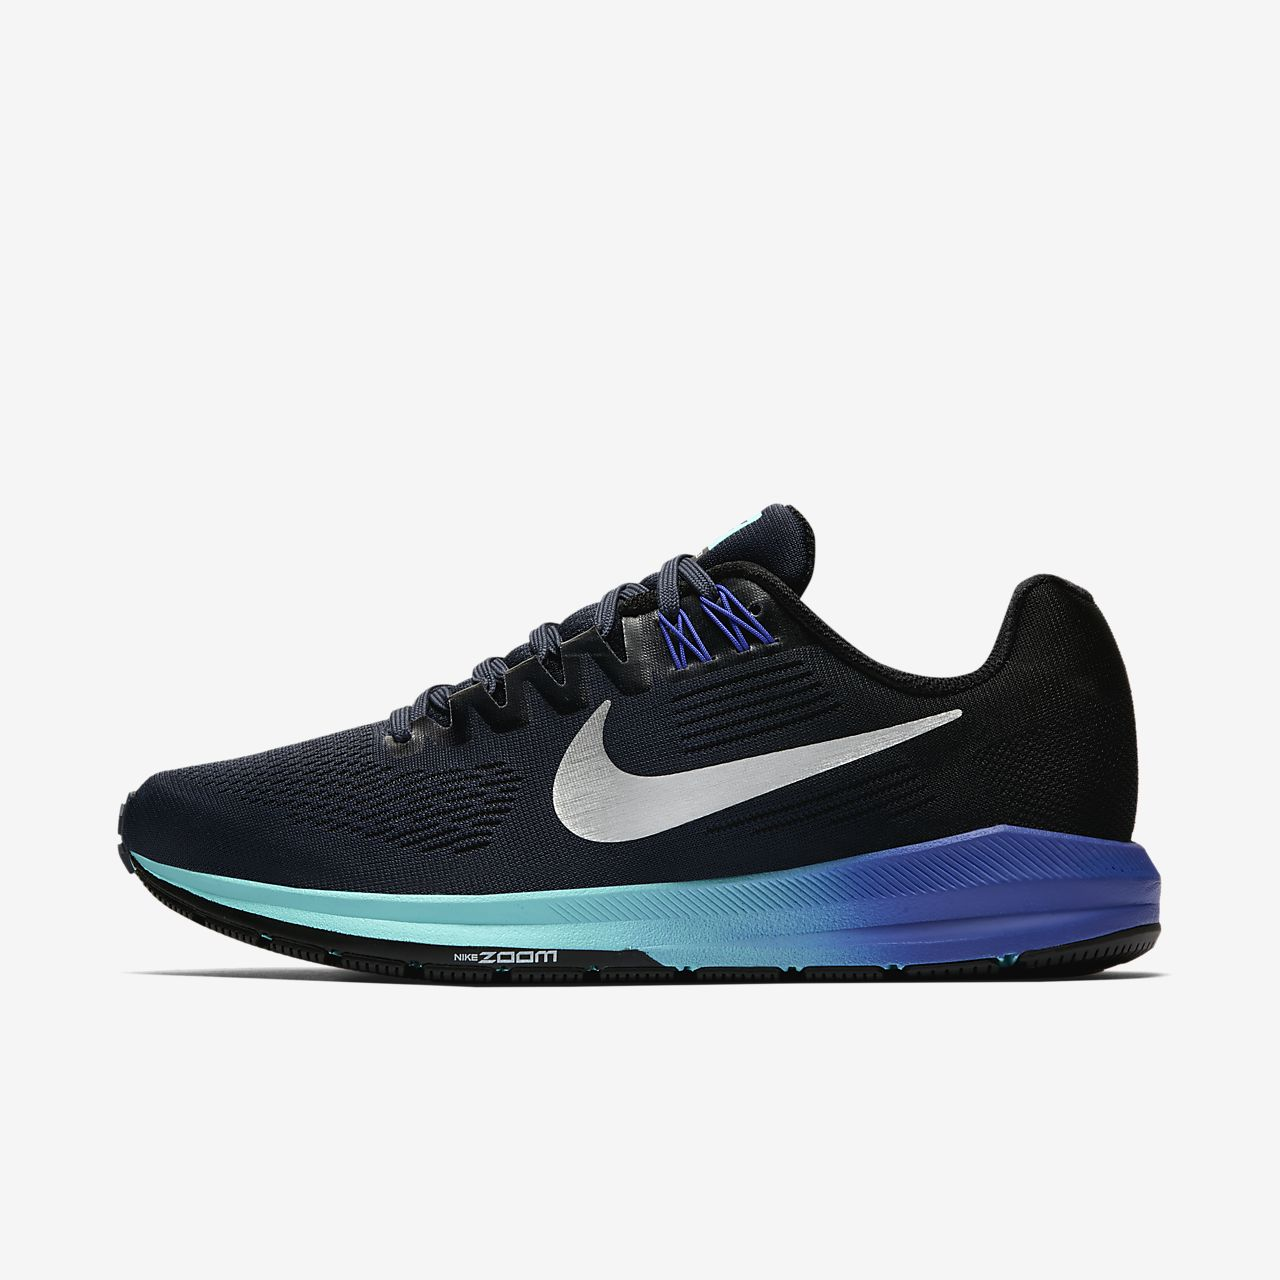 3ad8d04b18f Nike Air Zoom Structure 21 Women s Running Shoe. Nike.com SI